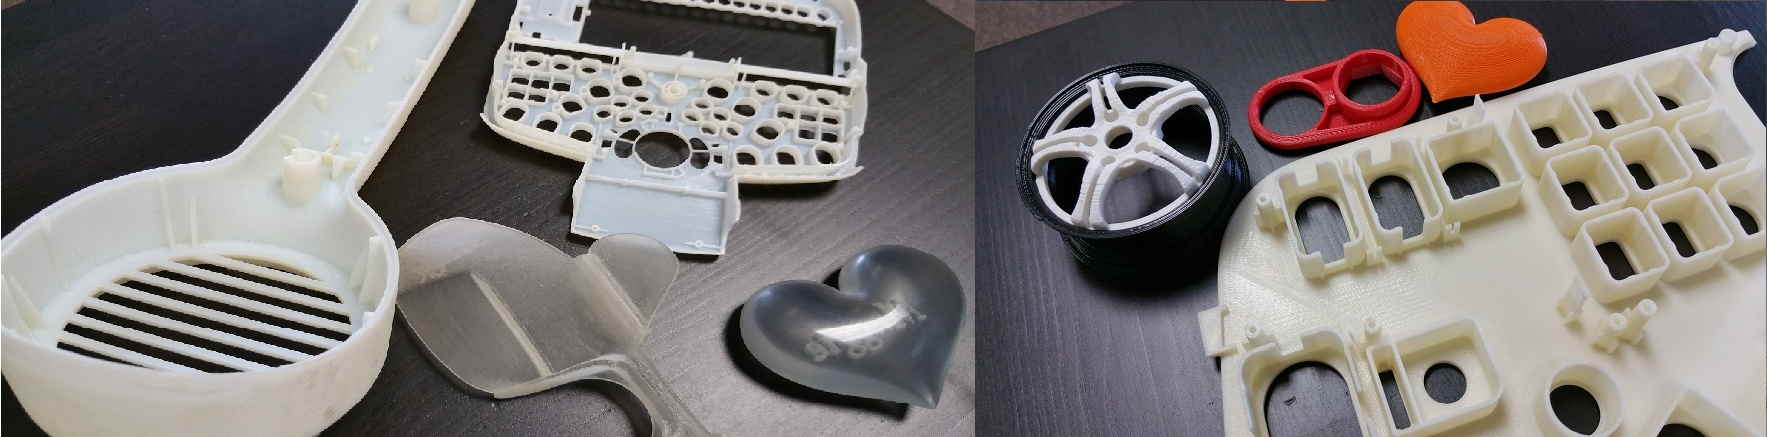 ABS and Polyjet 3D printed parts